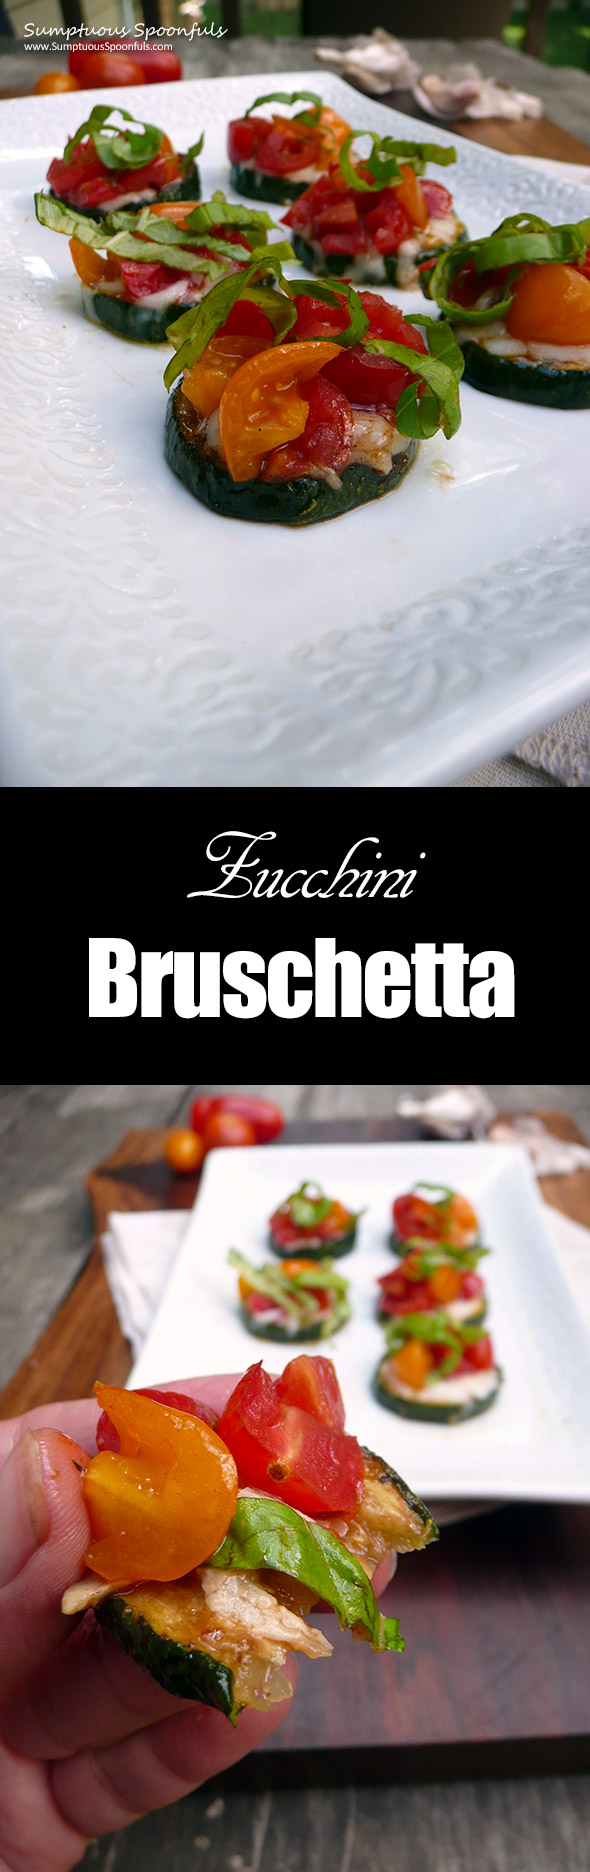 Zucchini Bruschetta ~ Sumptuous Spoonfuls #easy #lowcarb #glutenfree #appetizer #recipe